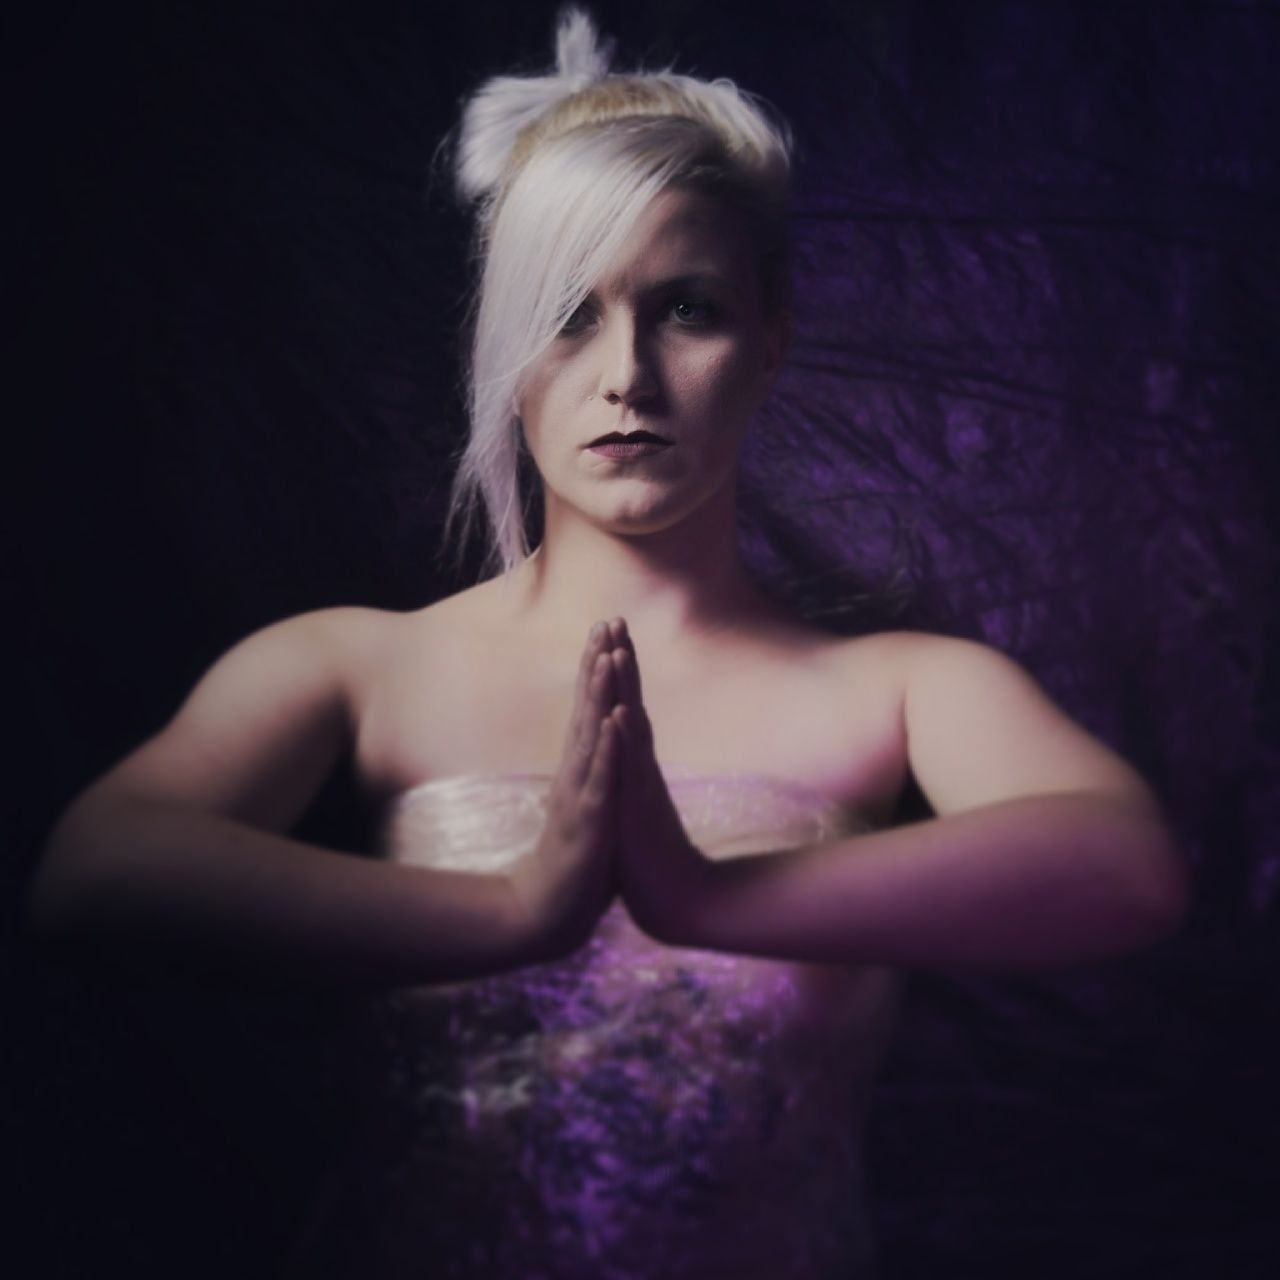 Namaste Namaste ❤ Beautiful Beautiful People Beauty Women Portrait One Person Dark Only Women Human Skin Human Body Part Real People People Young Women Wrong Photo Project One Woman Only Young Adult Fashion Fashion Model Adult Human Hand One Young Woman Only Adults Only First Eyeem Photo